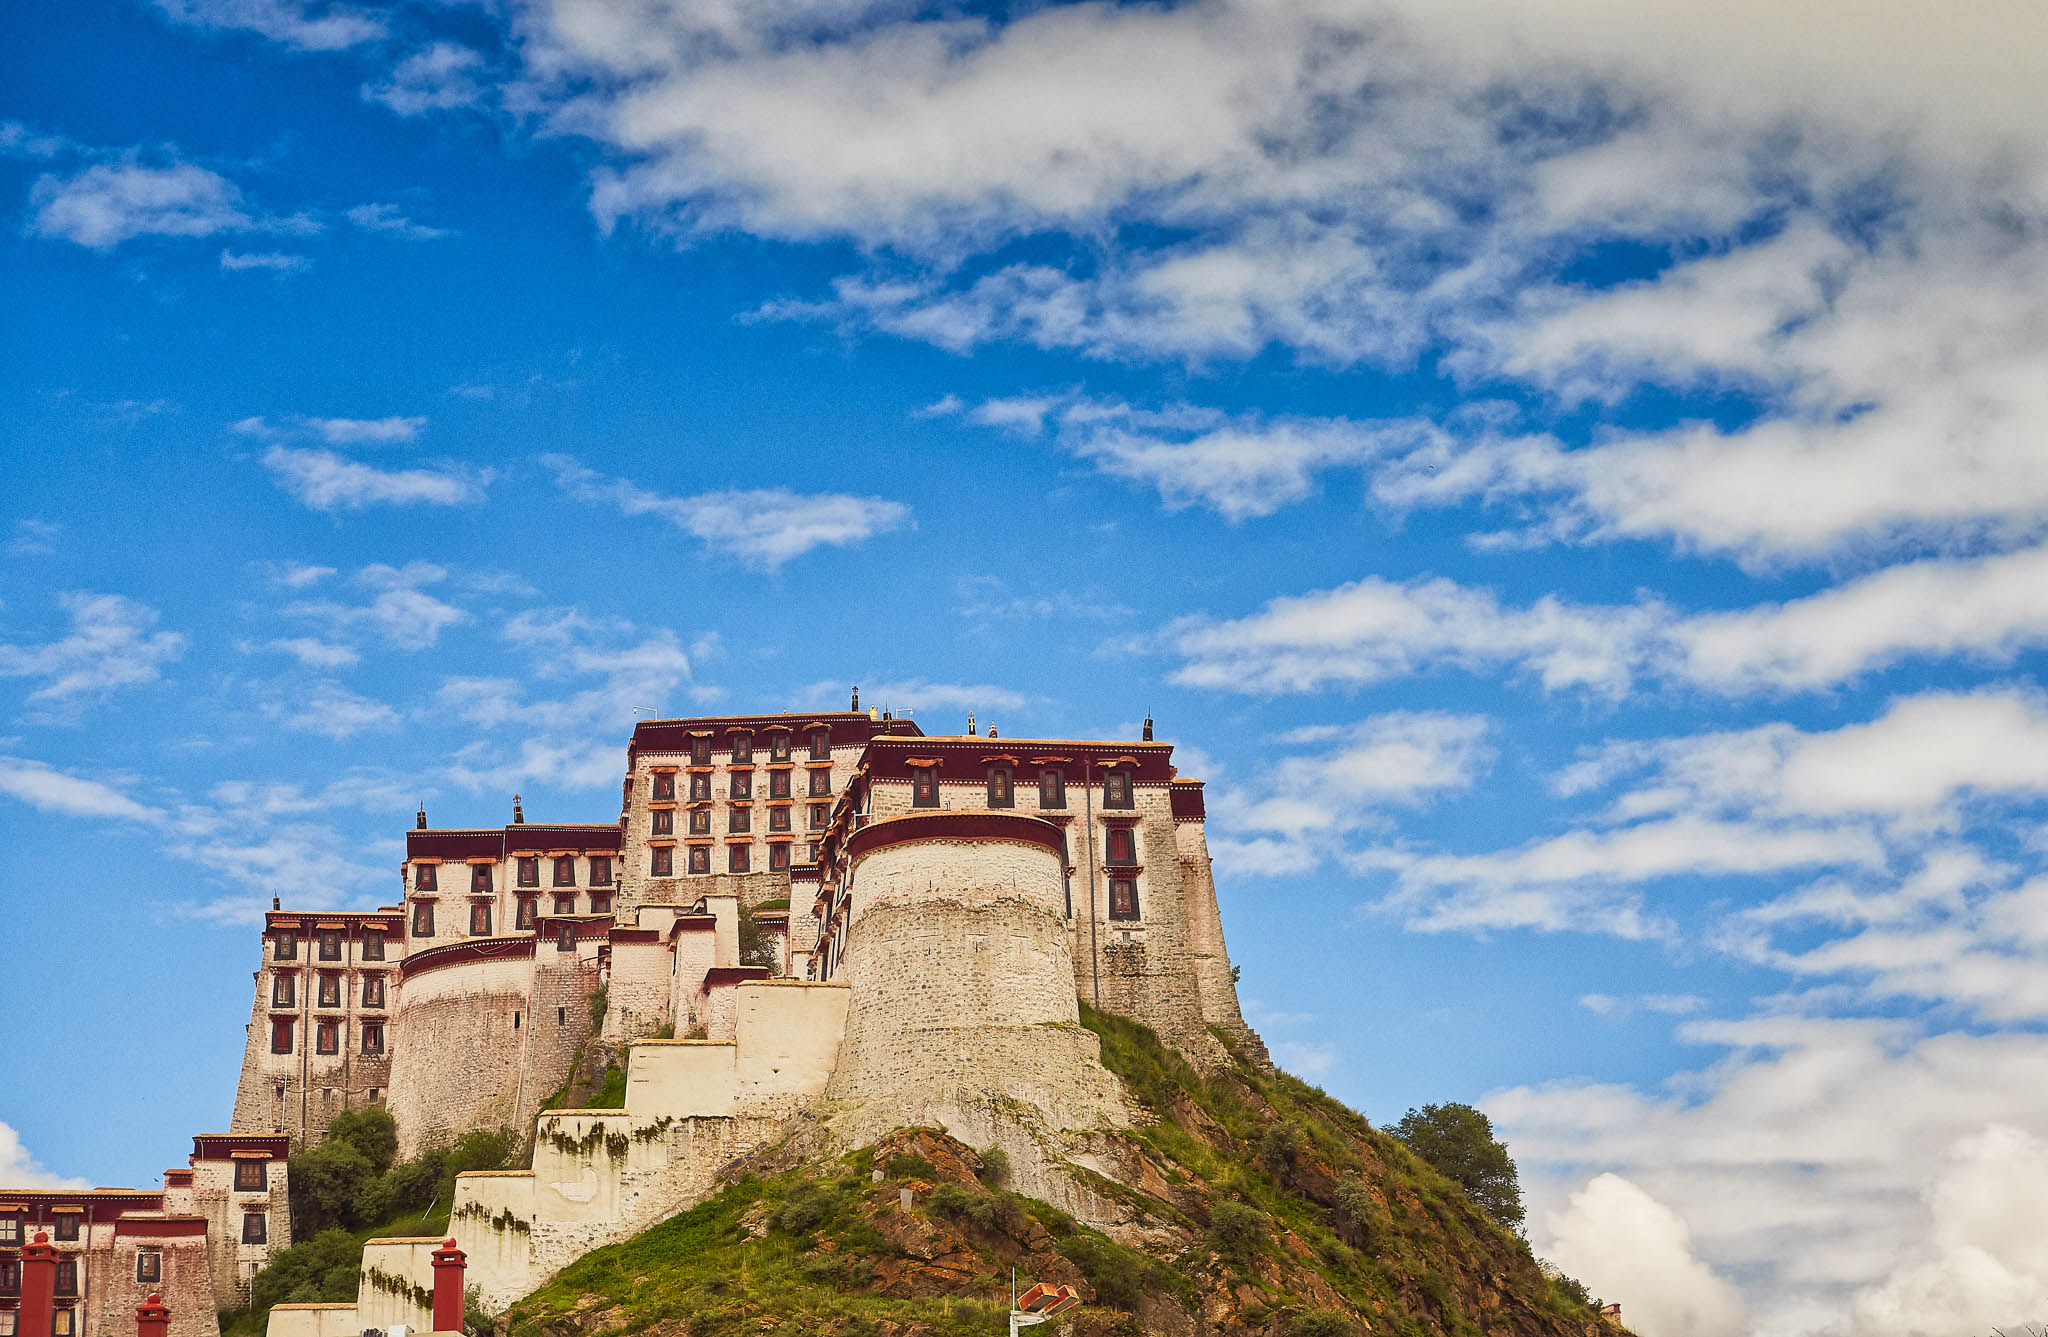 Side view of the Potala Palace, Lhasa, Tibet, China